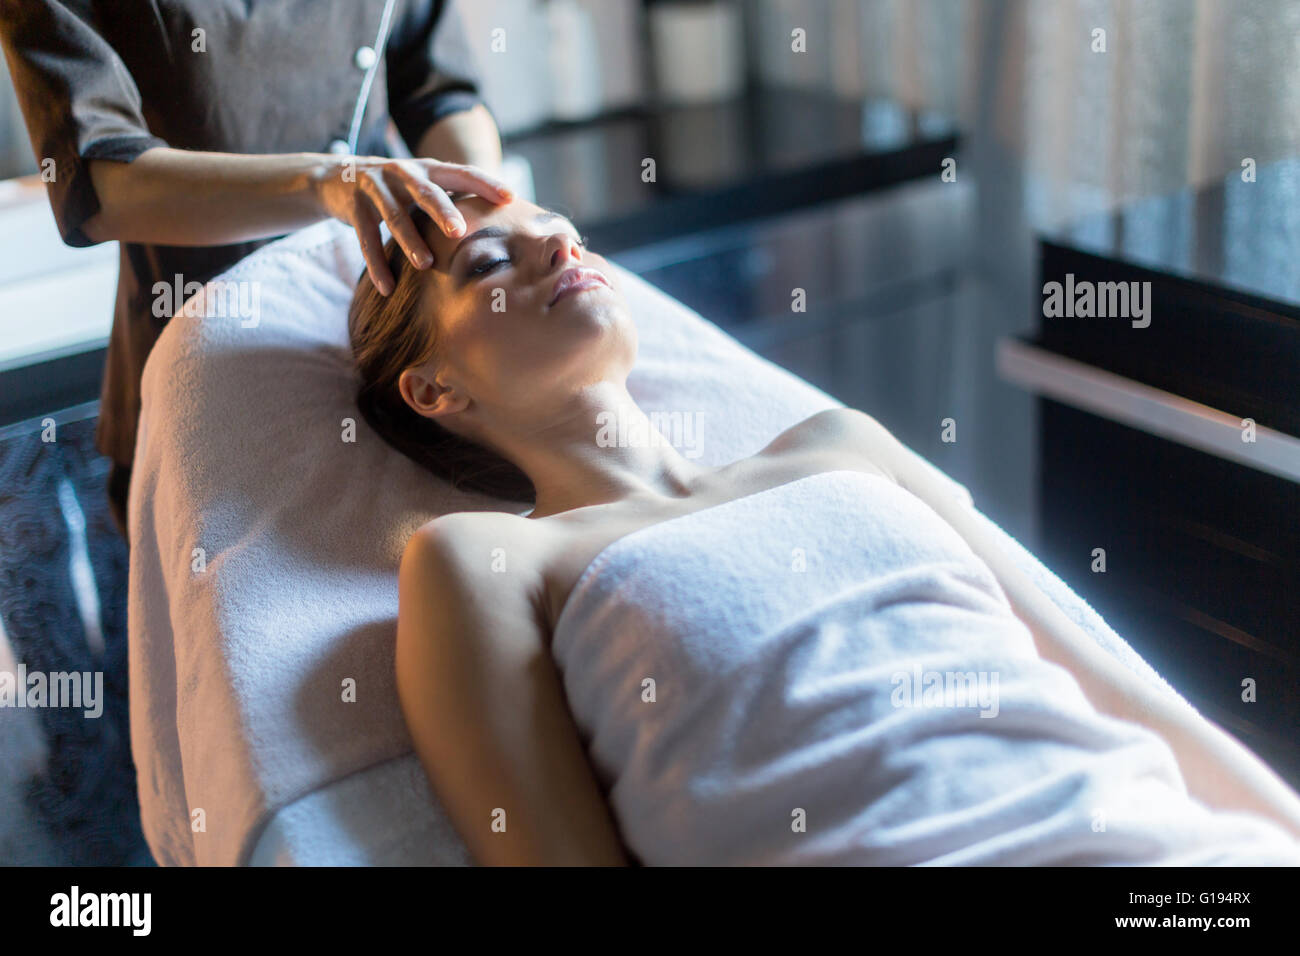 Masseur treating face of a beautiful, young woman lying on the massage table - Stock Image